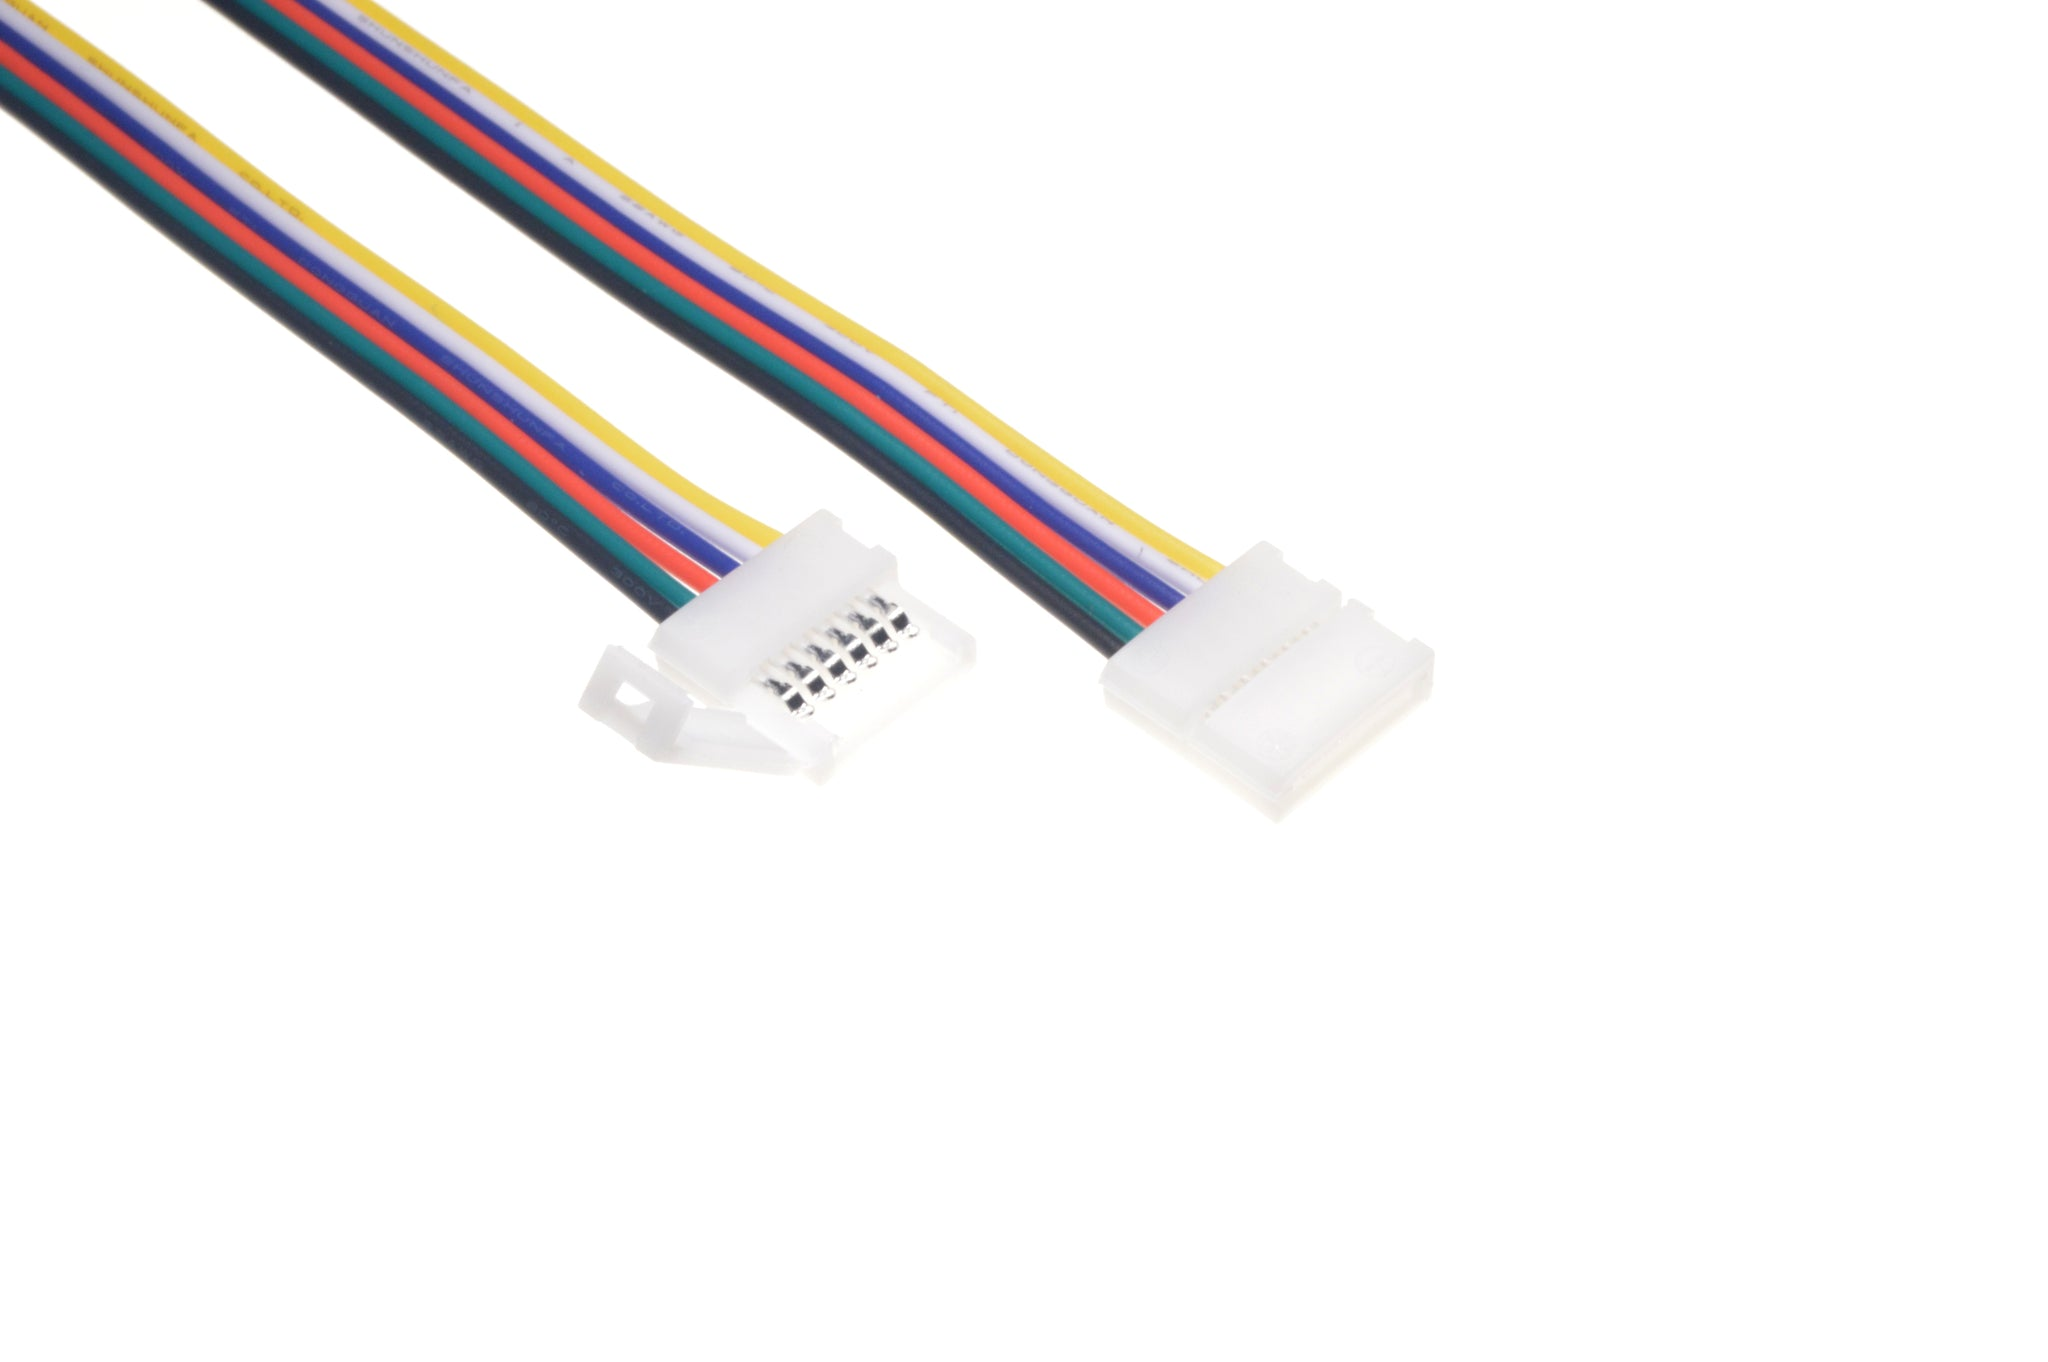 Led Strip To Wire Solderless Connector For 5 In 1 Wiring Pn 3075 Cable